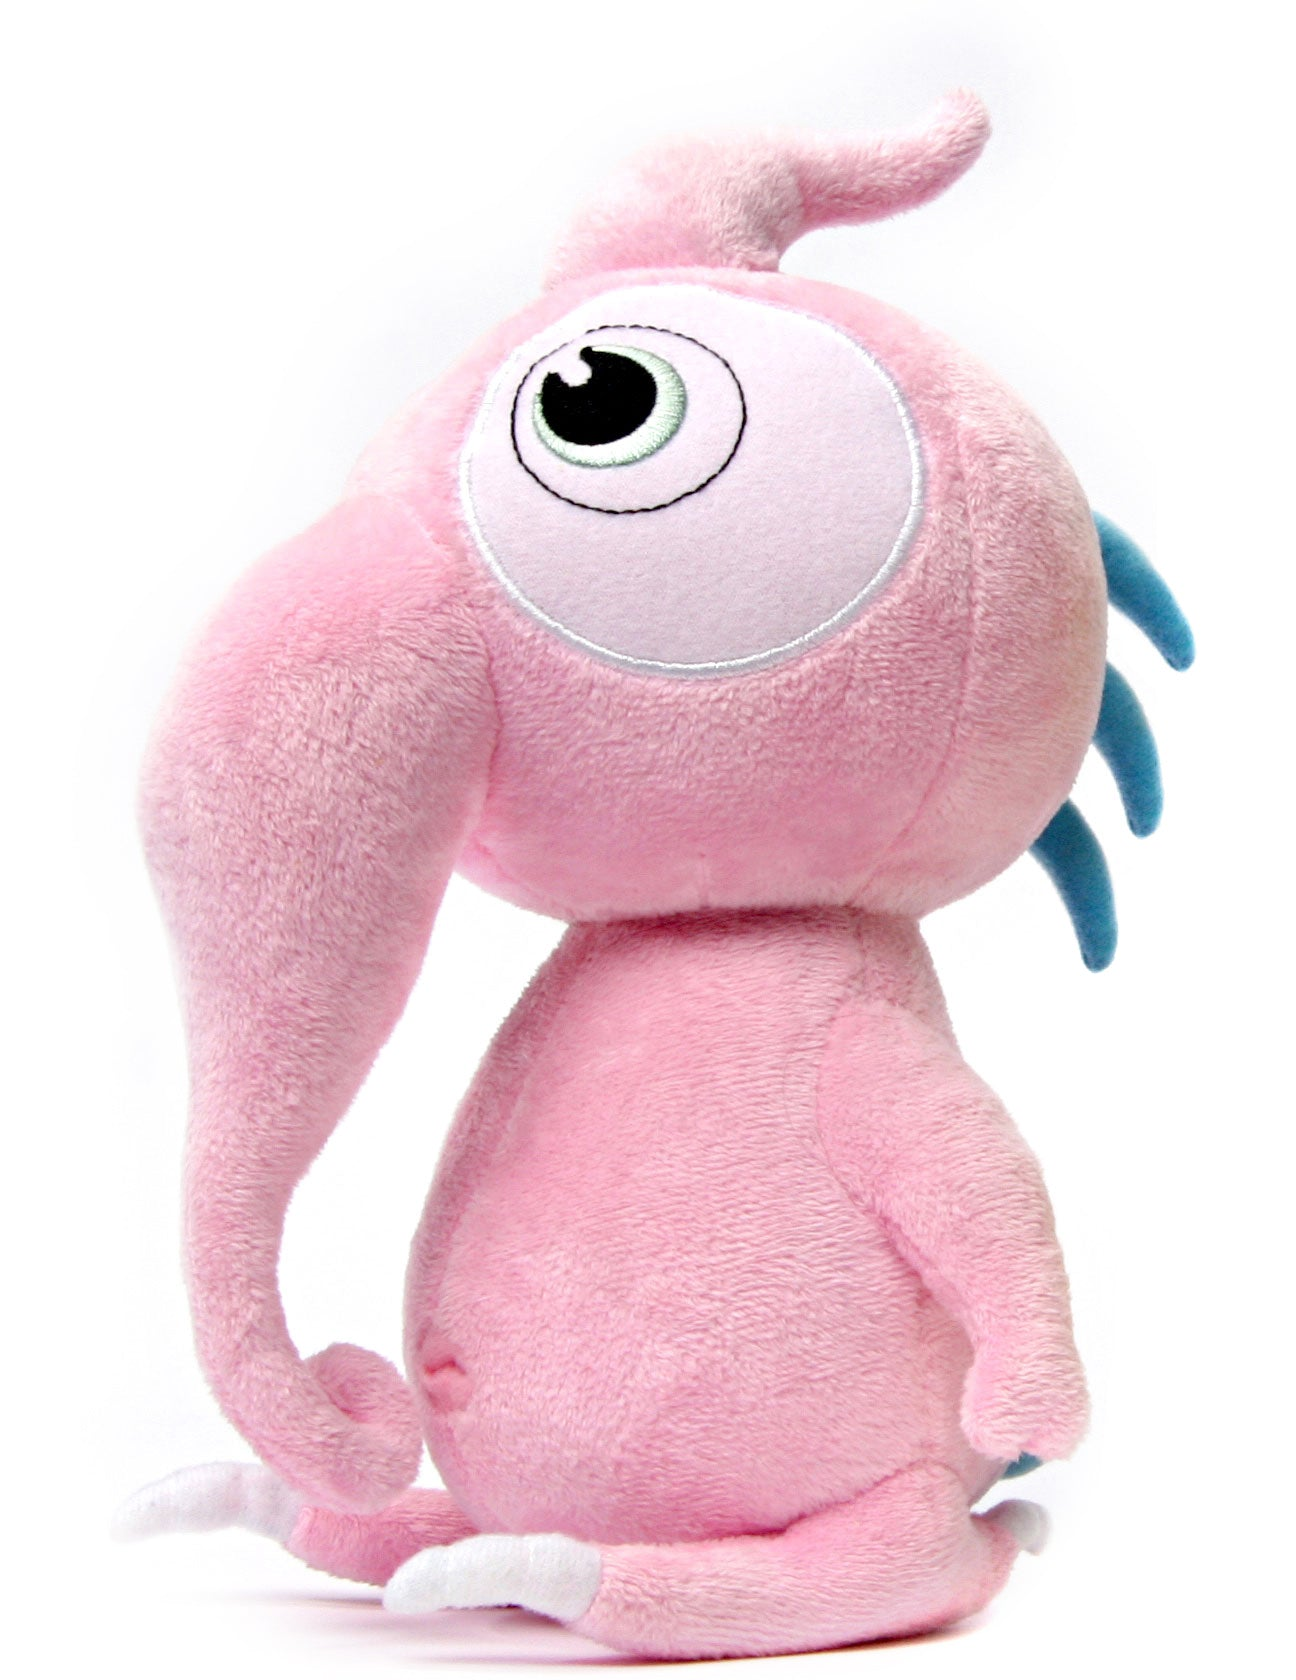 Squeek - The Monster of Innocence - WorryWoo Plush Toy